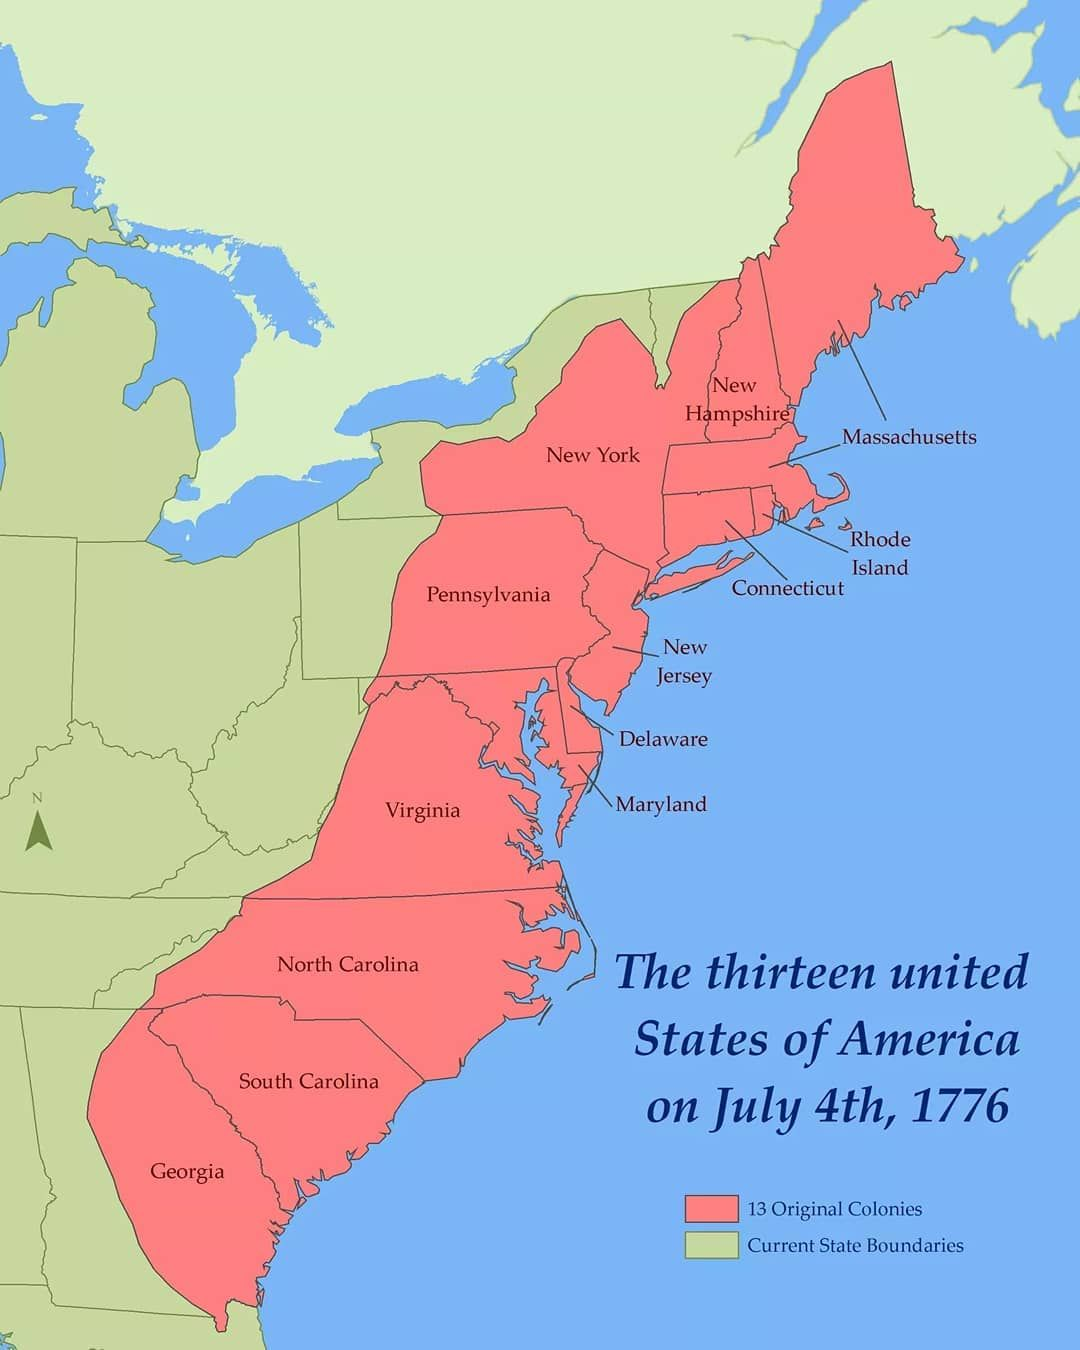 Map Of Us In 1776 Happy Independence day America Map of the United States on July